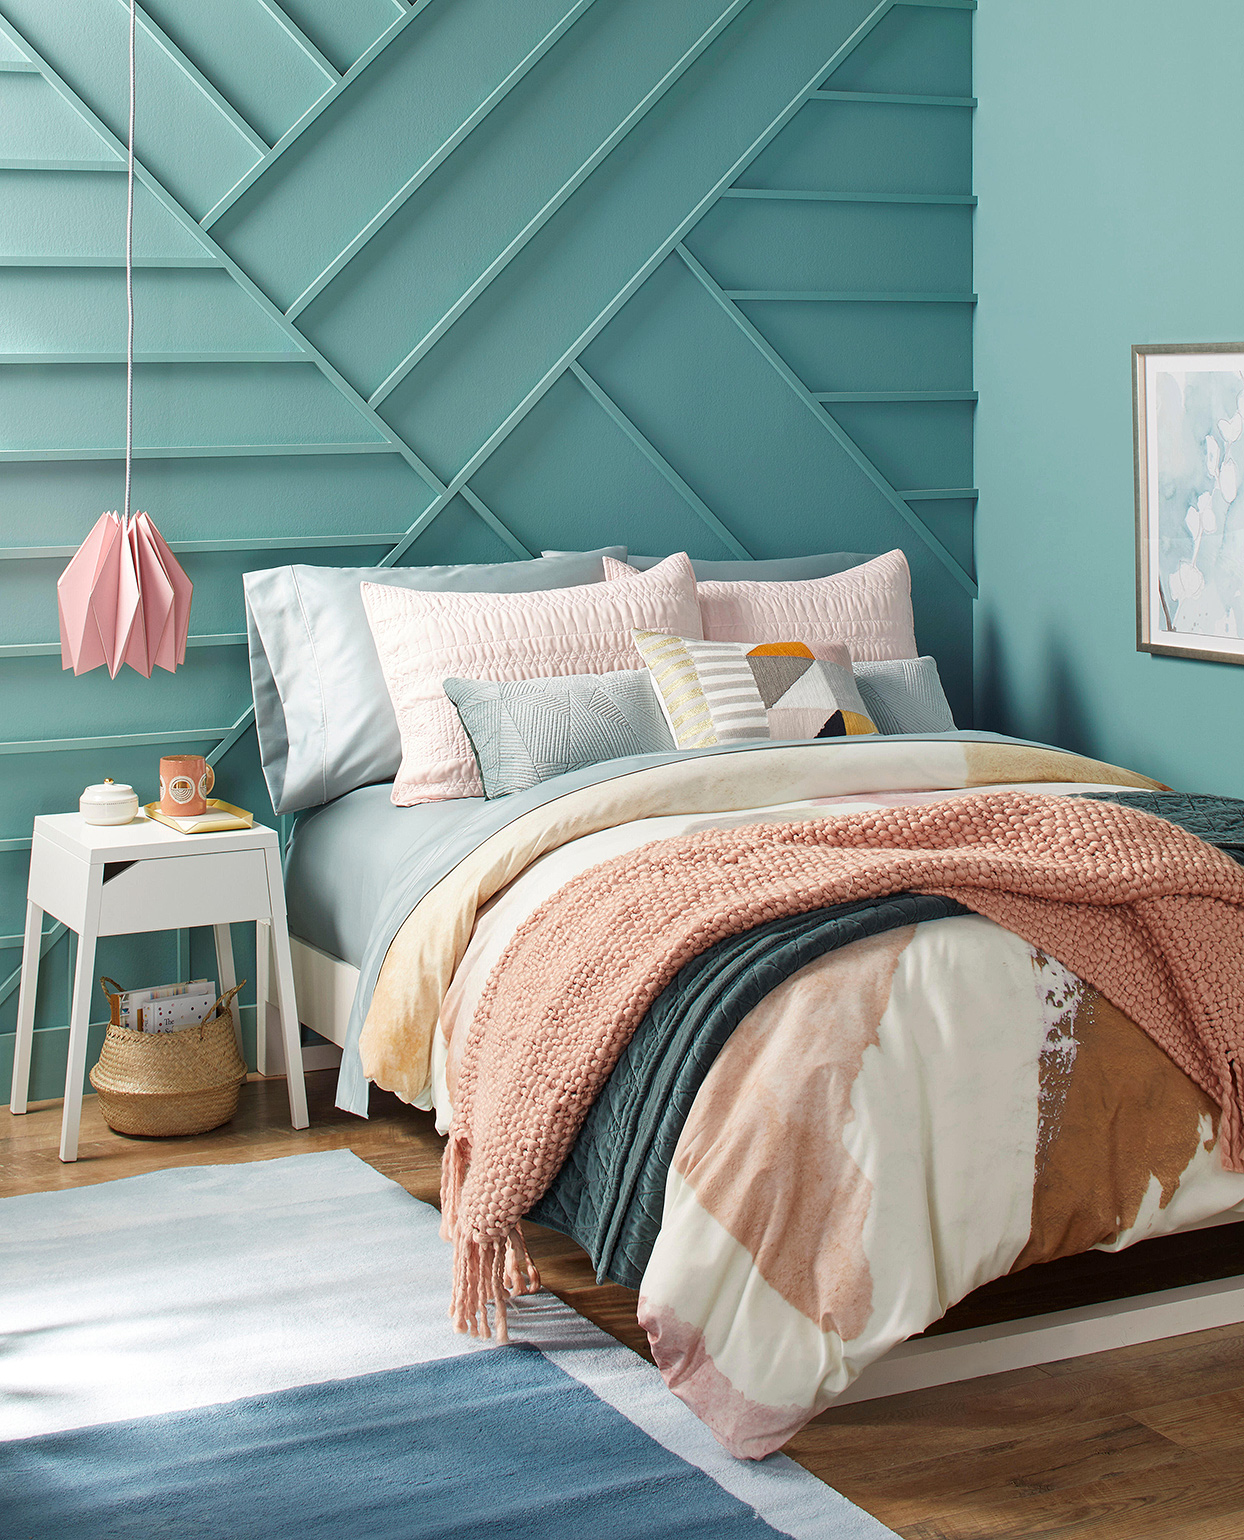 teal pink bedroom soft colors geometric wall paneling